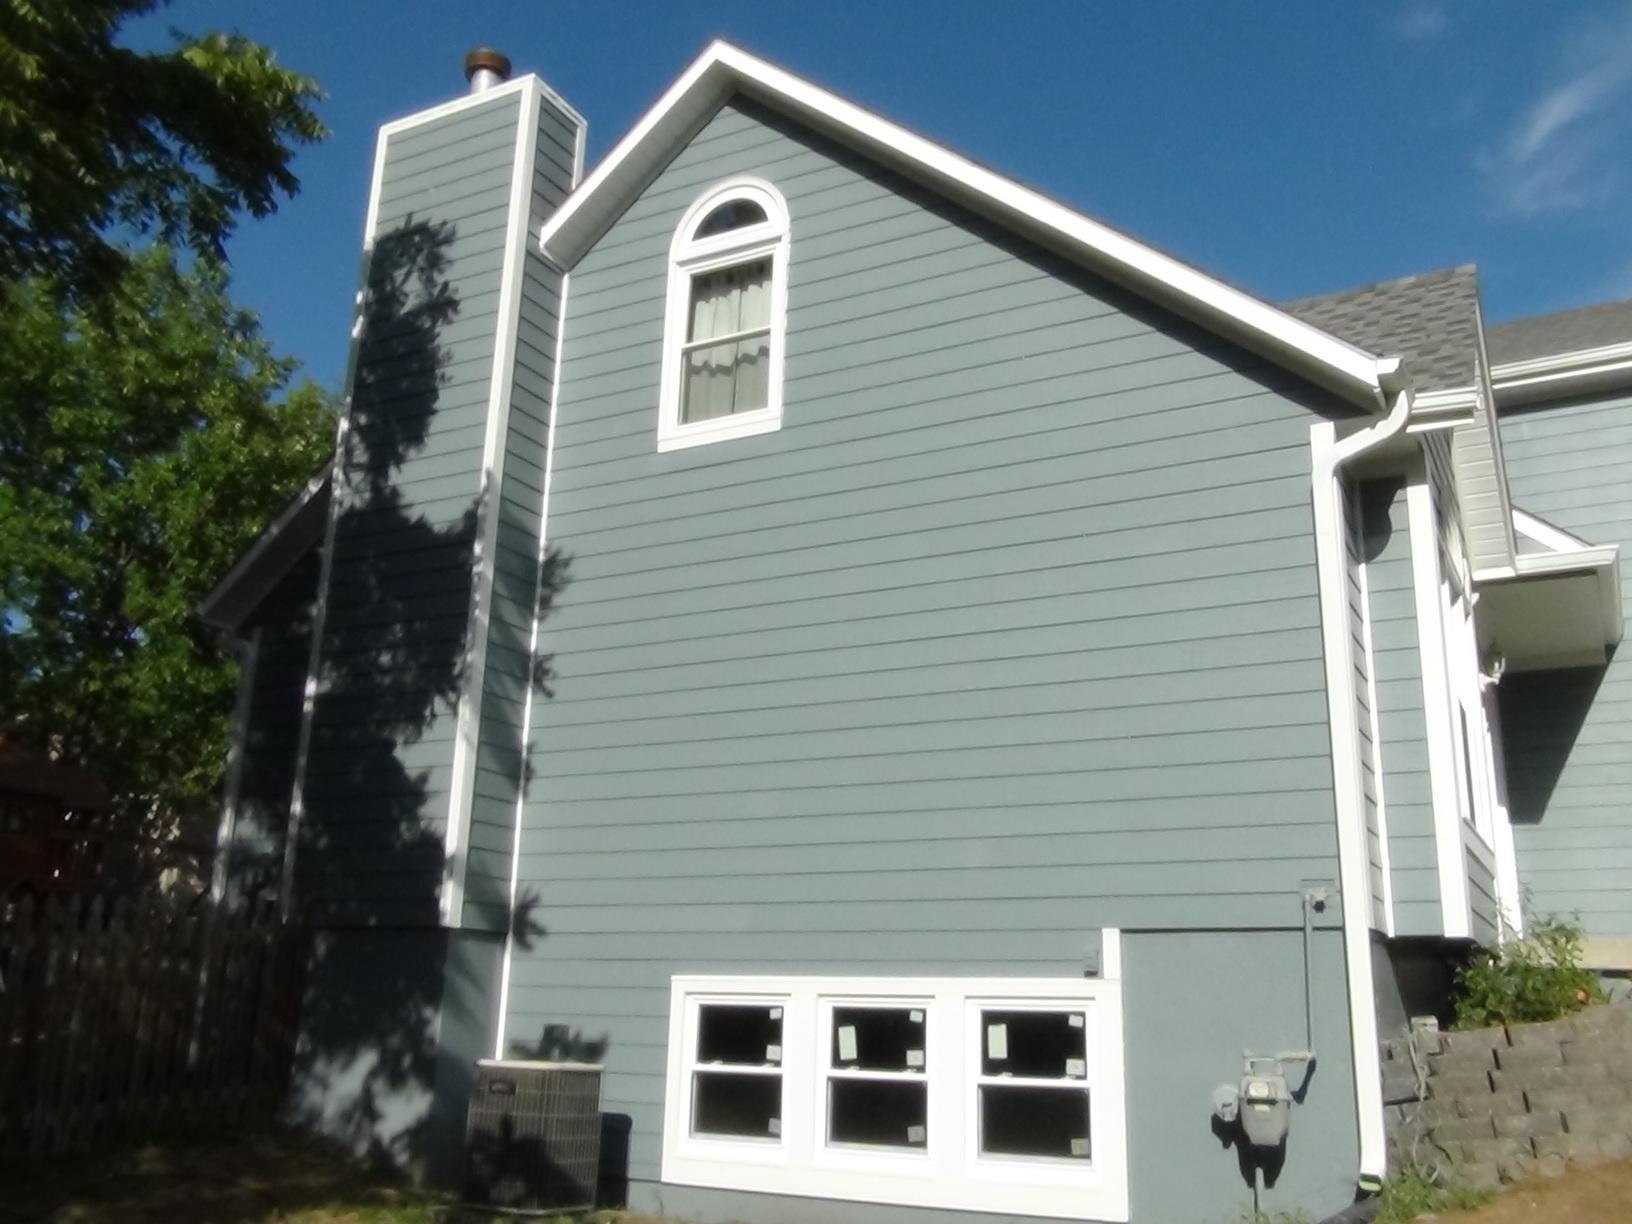 Install Siding and new window install in Overland Park, KS